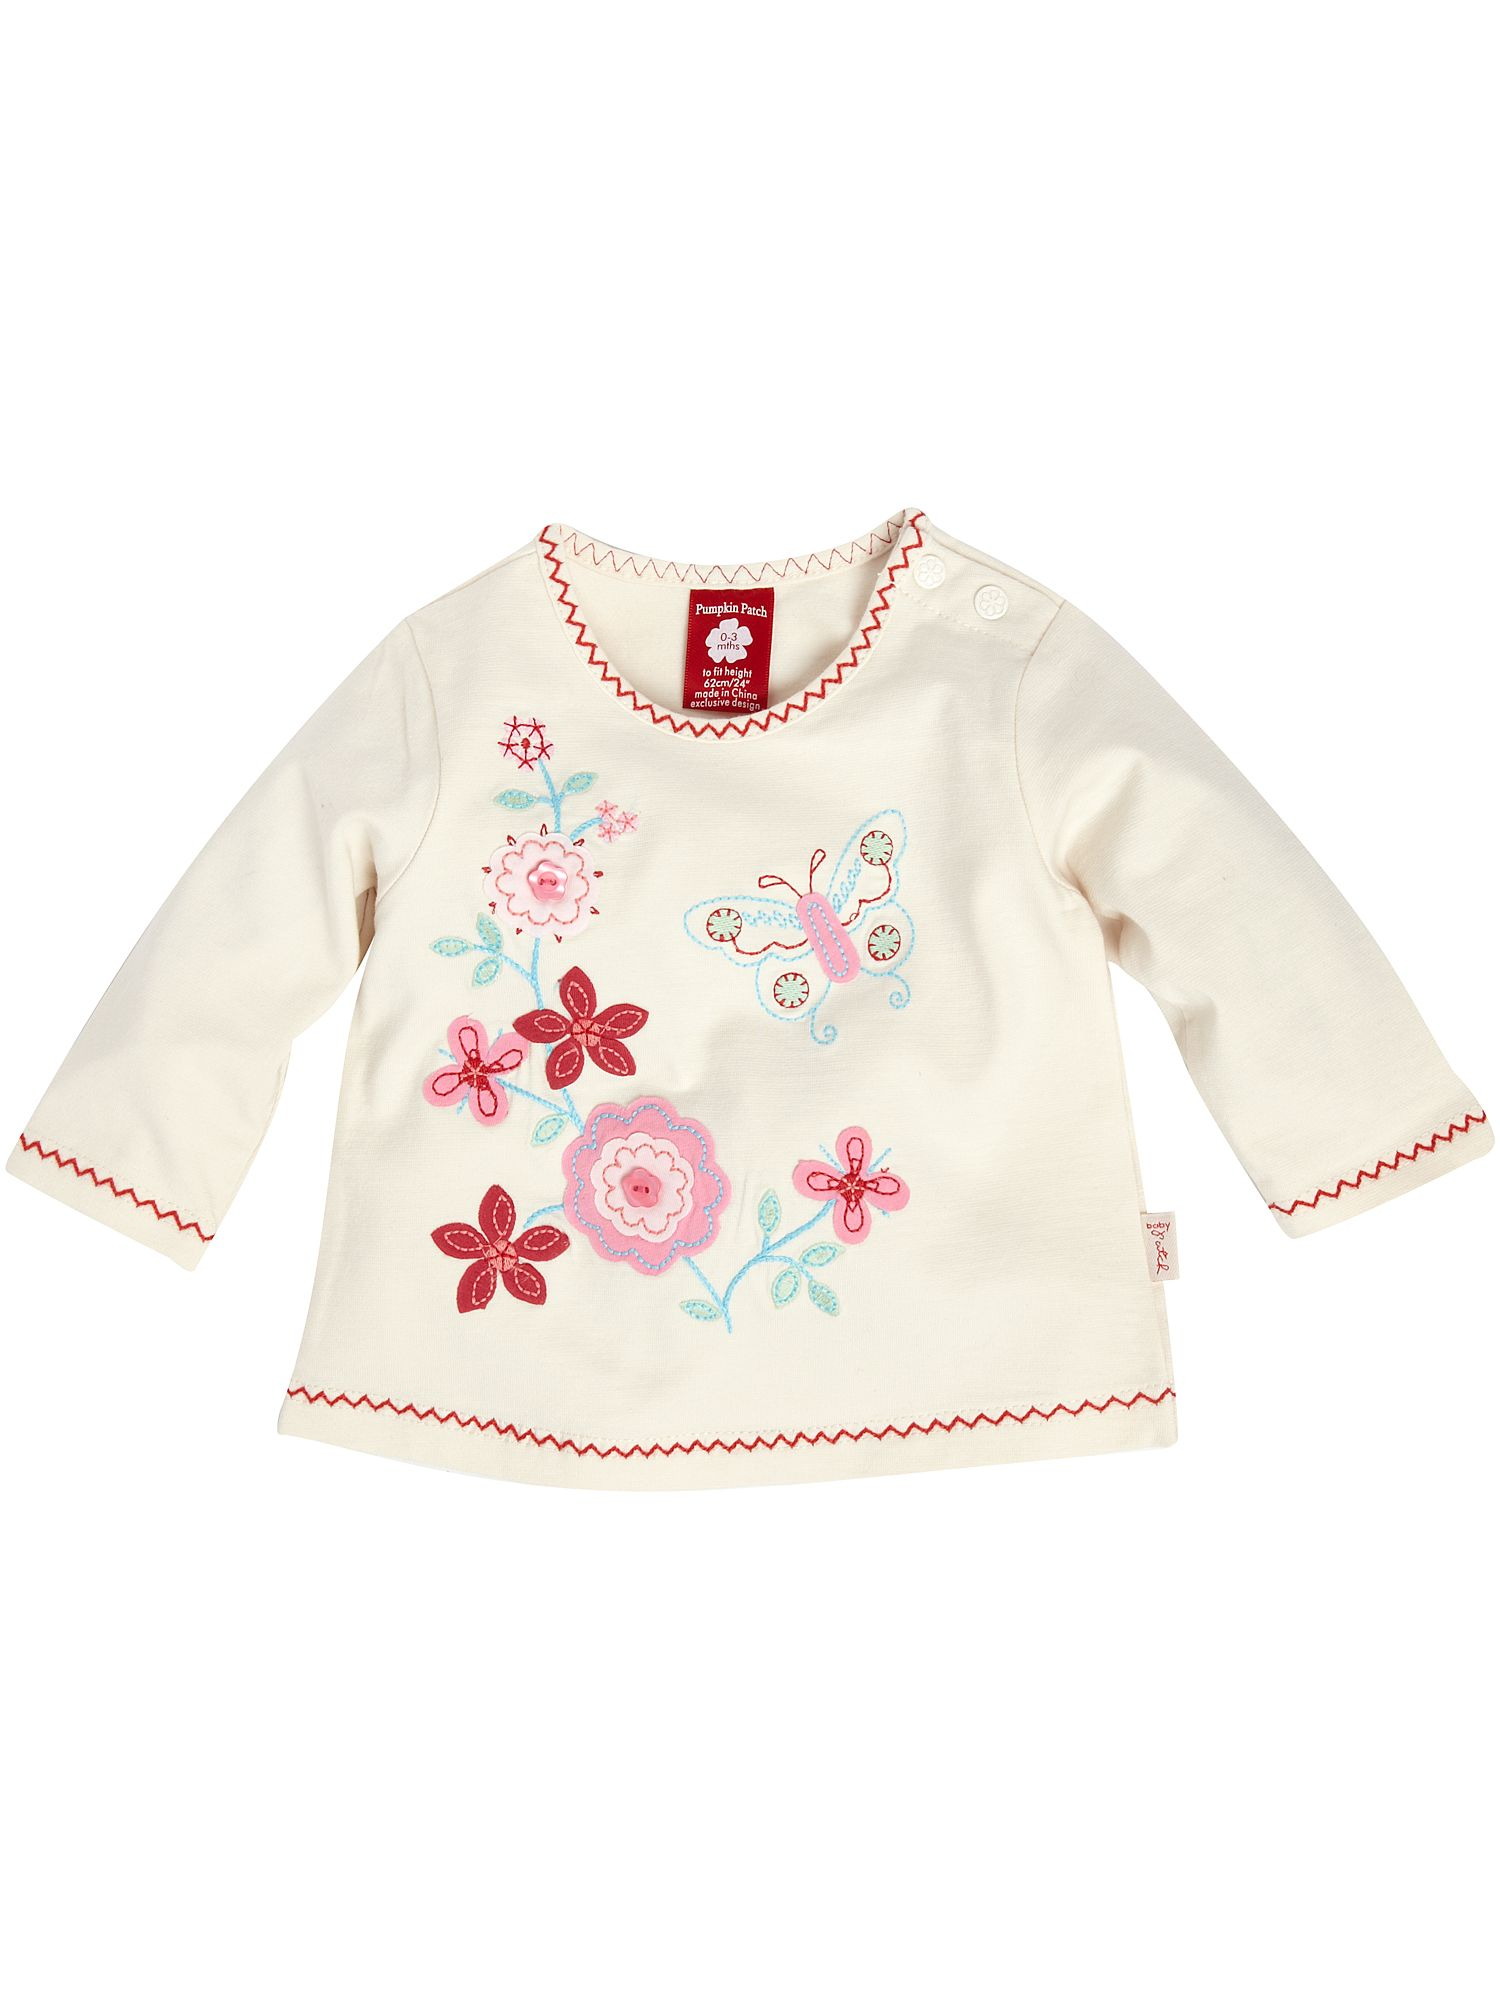 Pumpkin Patch Long-sleeved butterfly T-shirt White product image